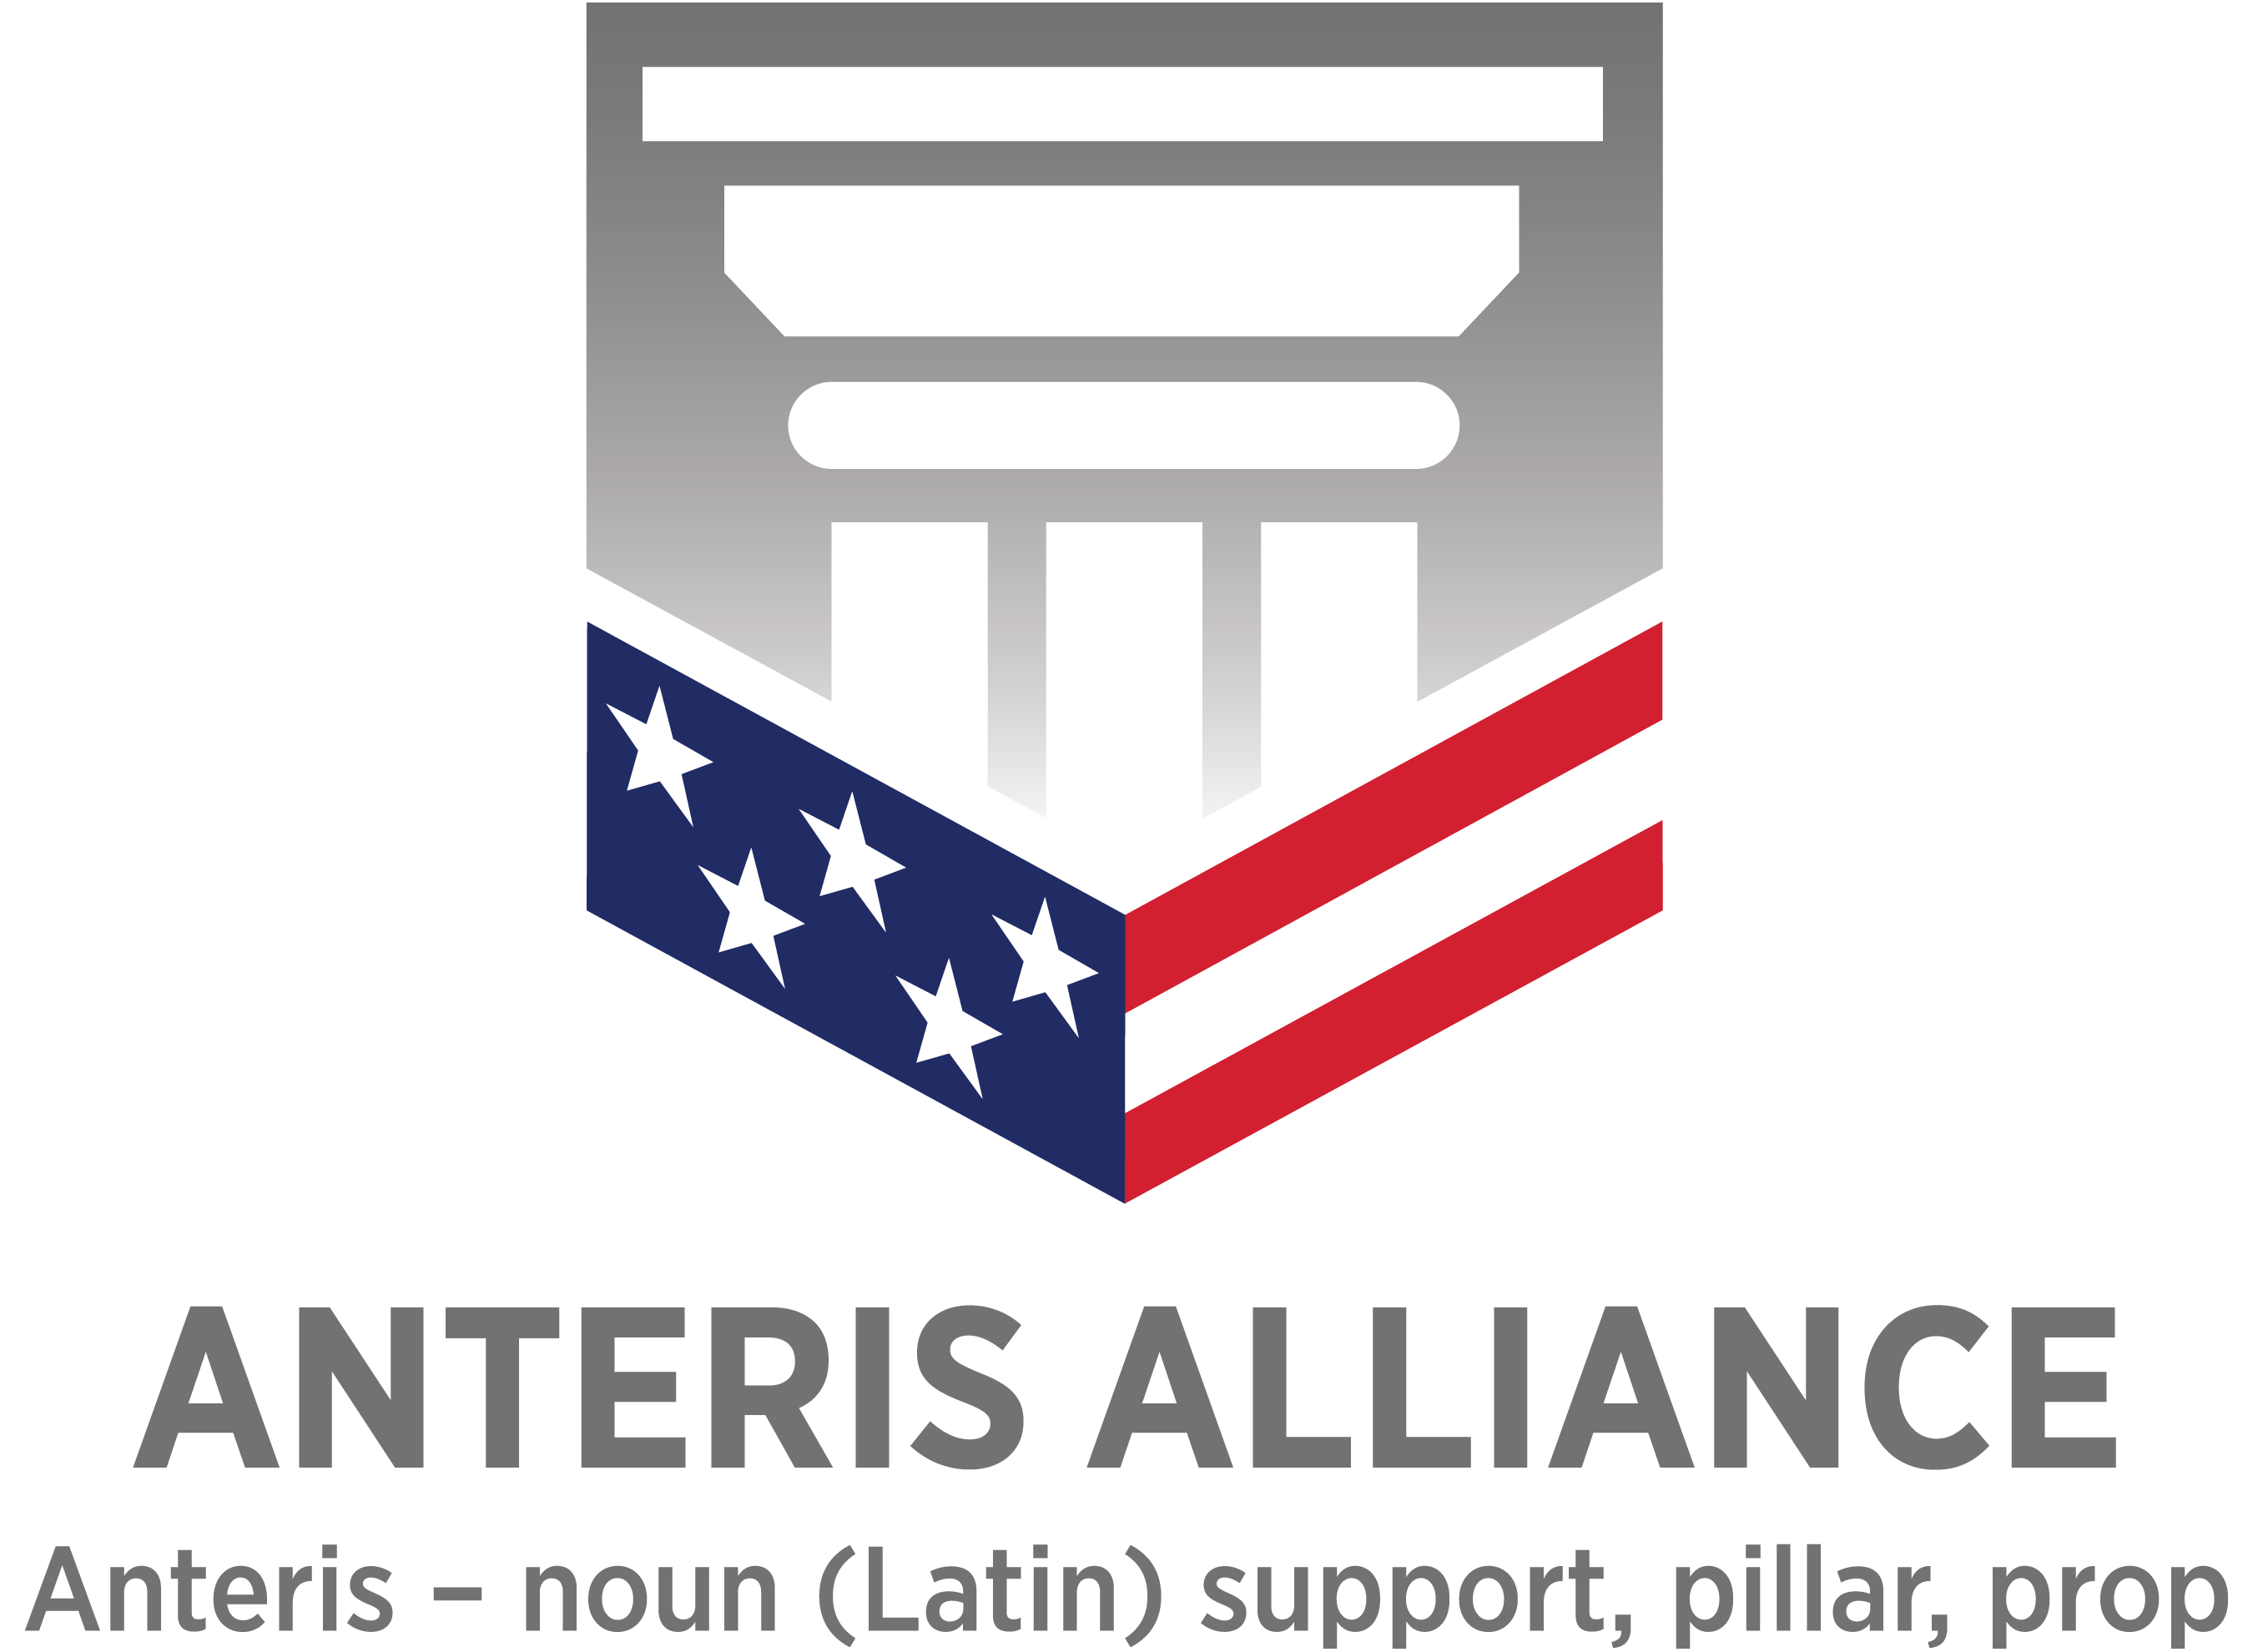 Anteris Alliance Veterans Organization